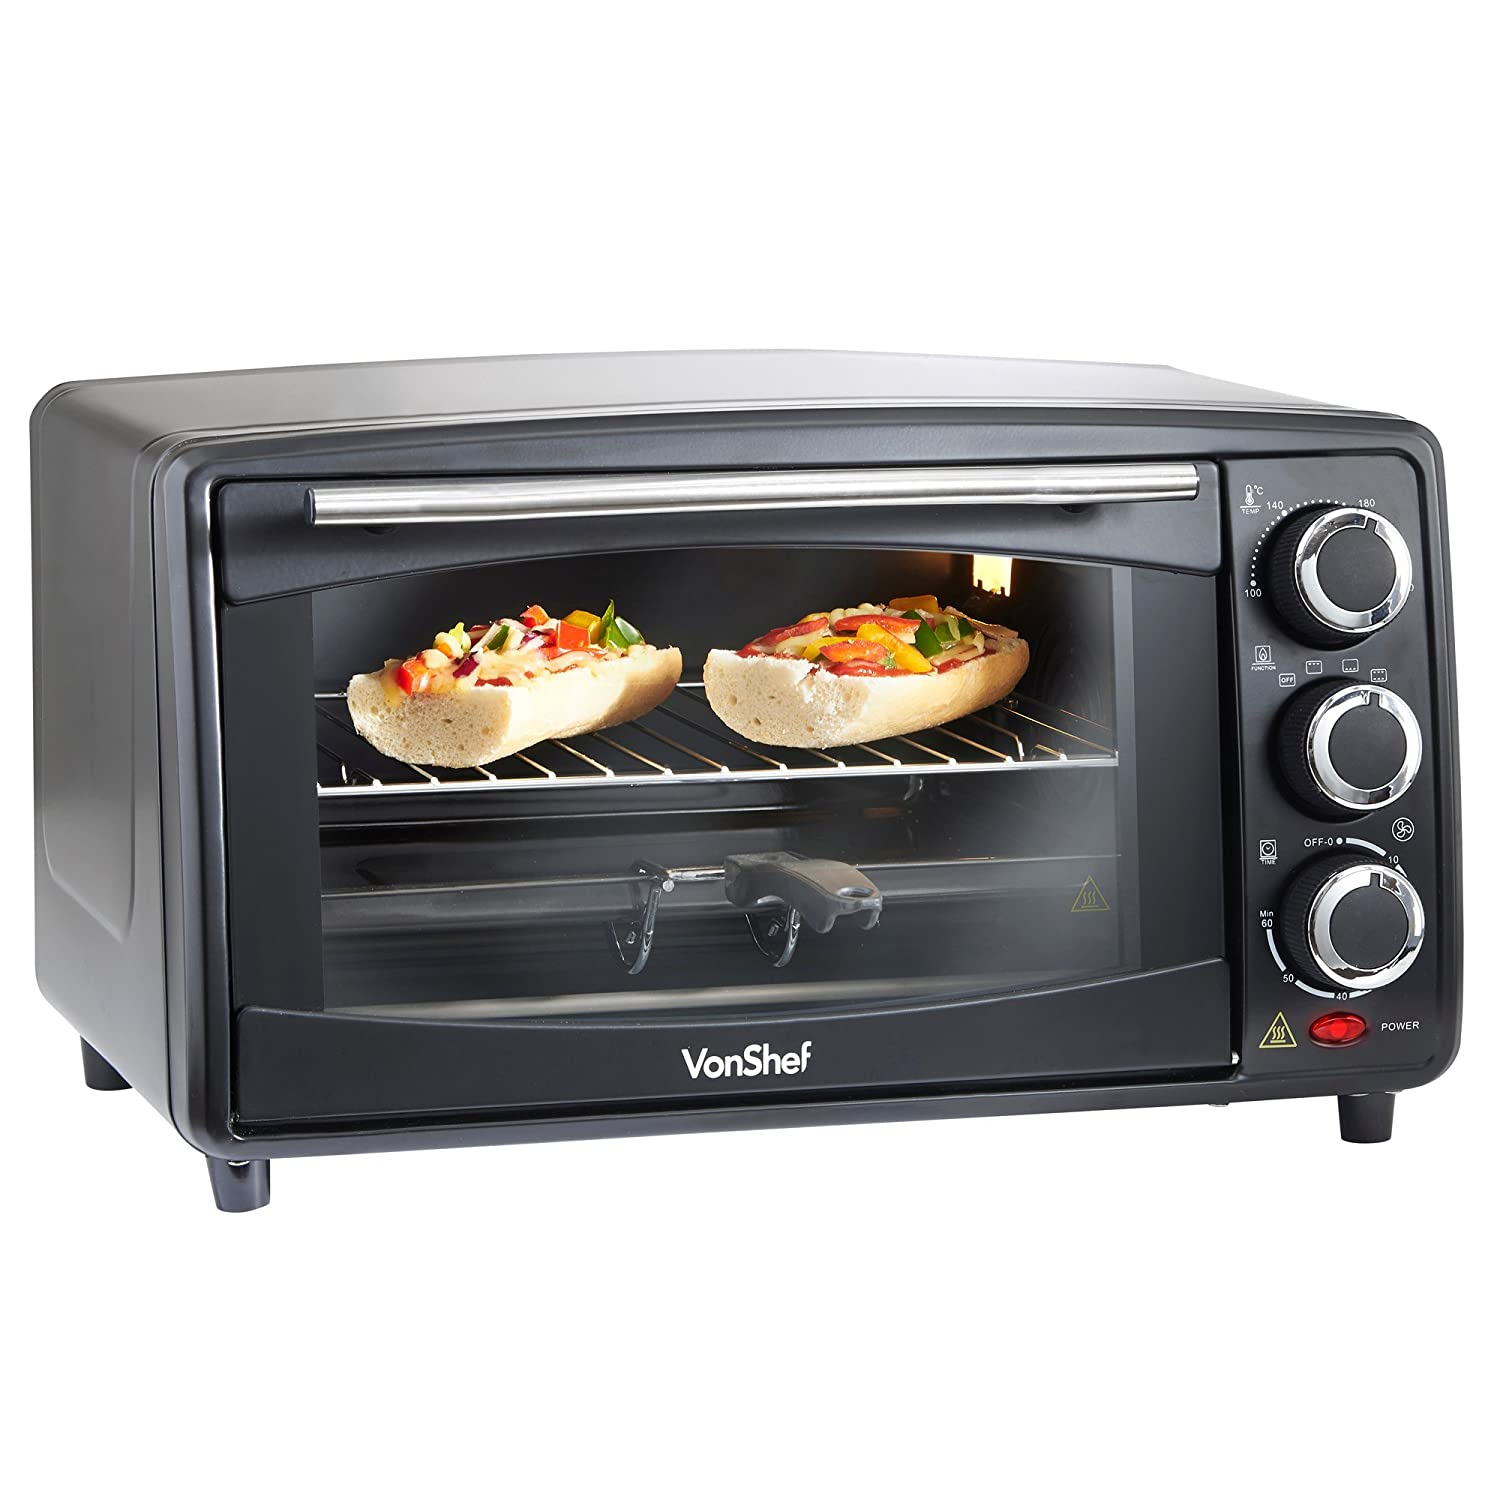 Toaster Ovens in India